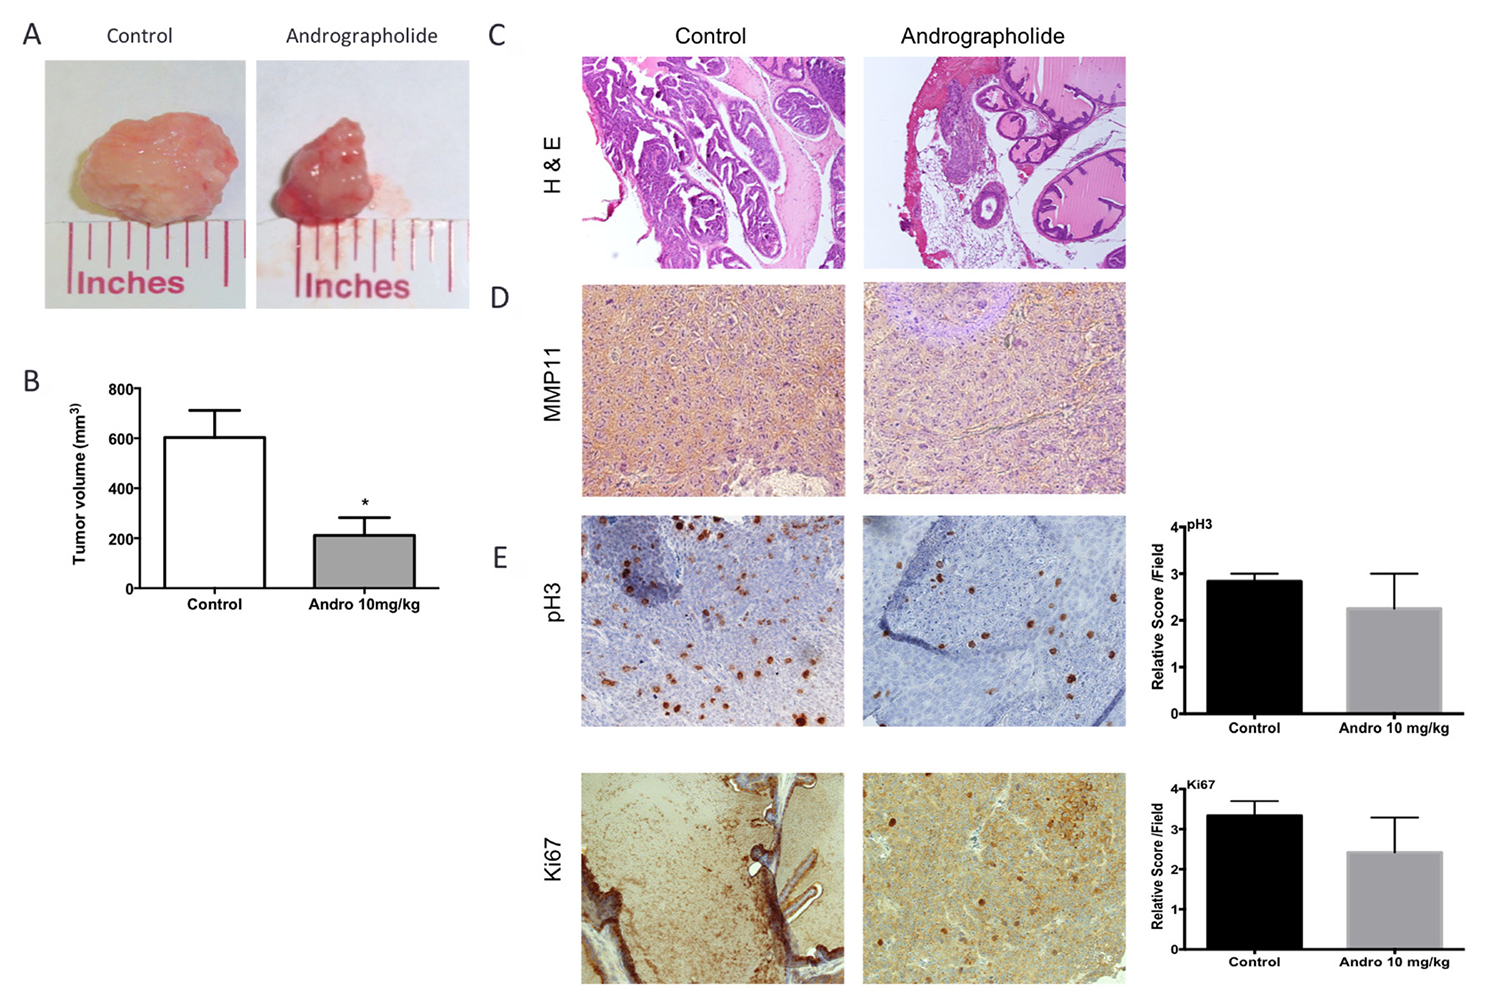 Andrographolide decreased tumor growth, MMP11 expression and proliferation.